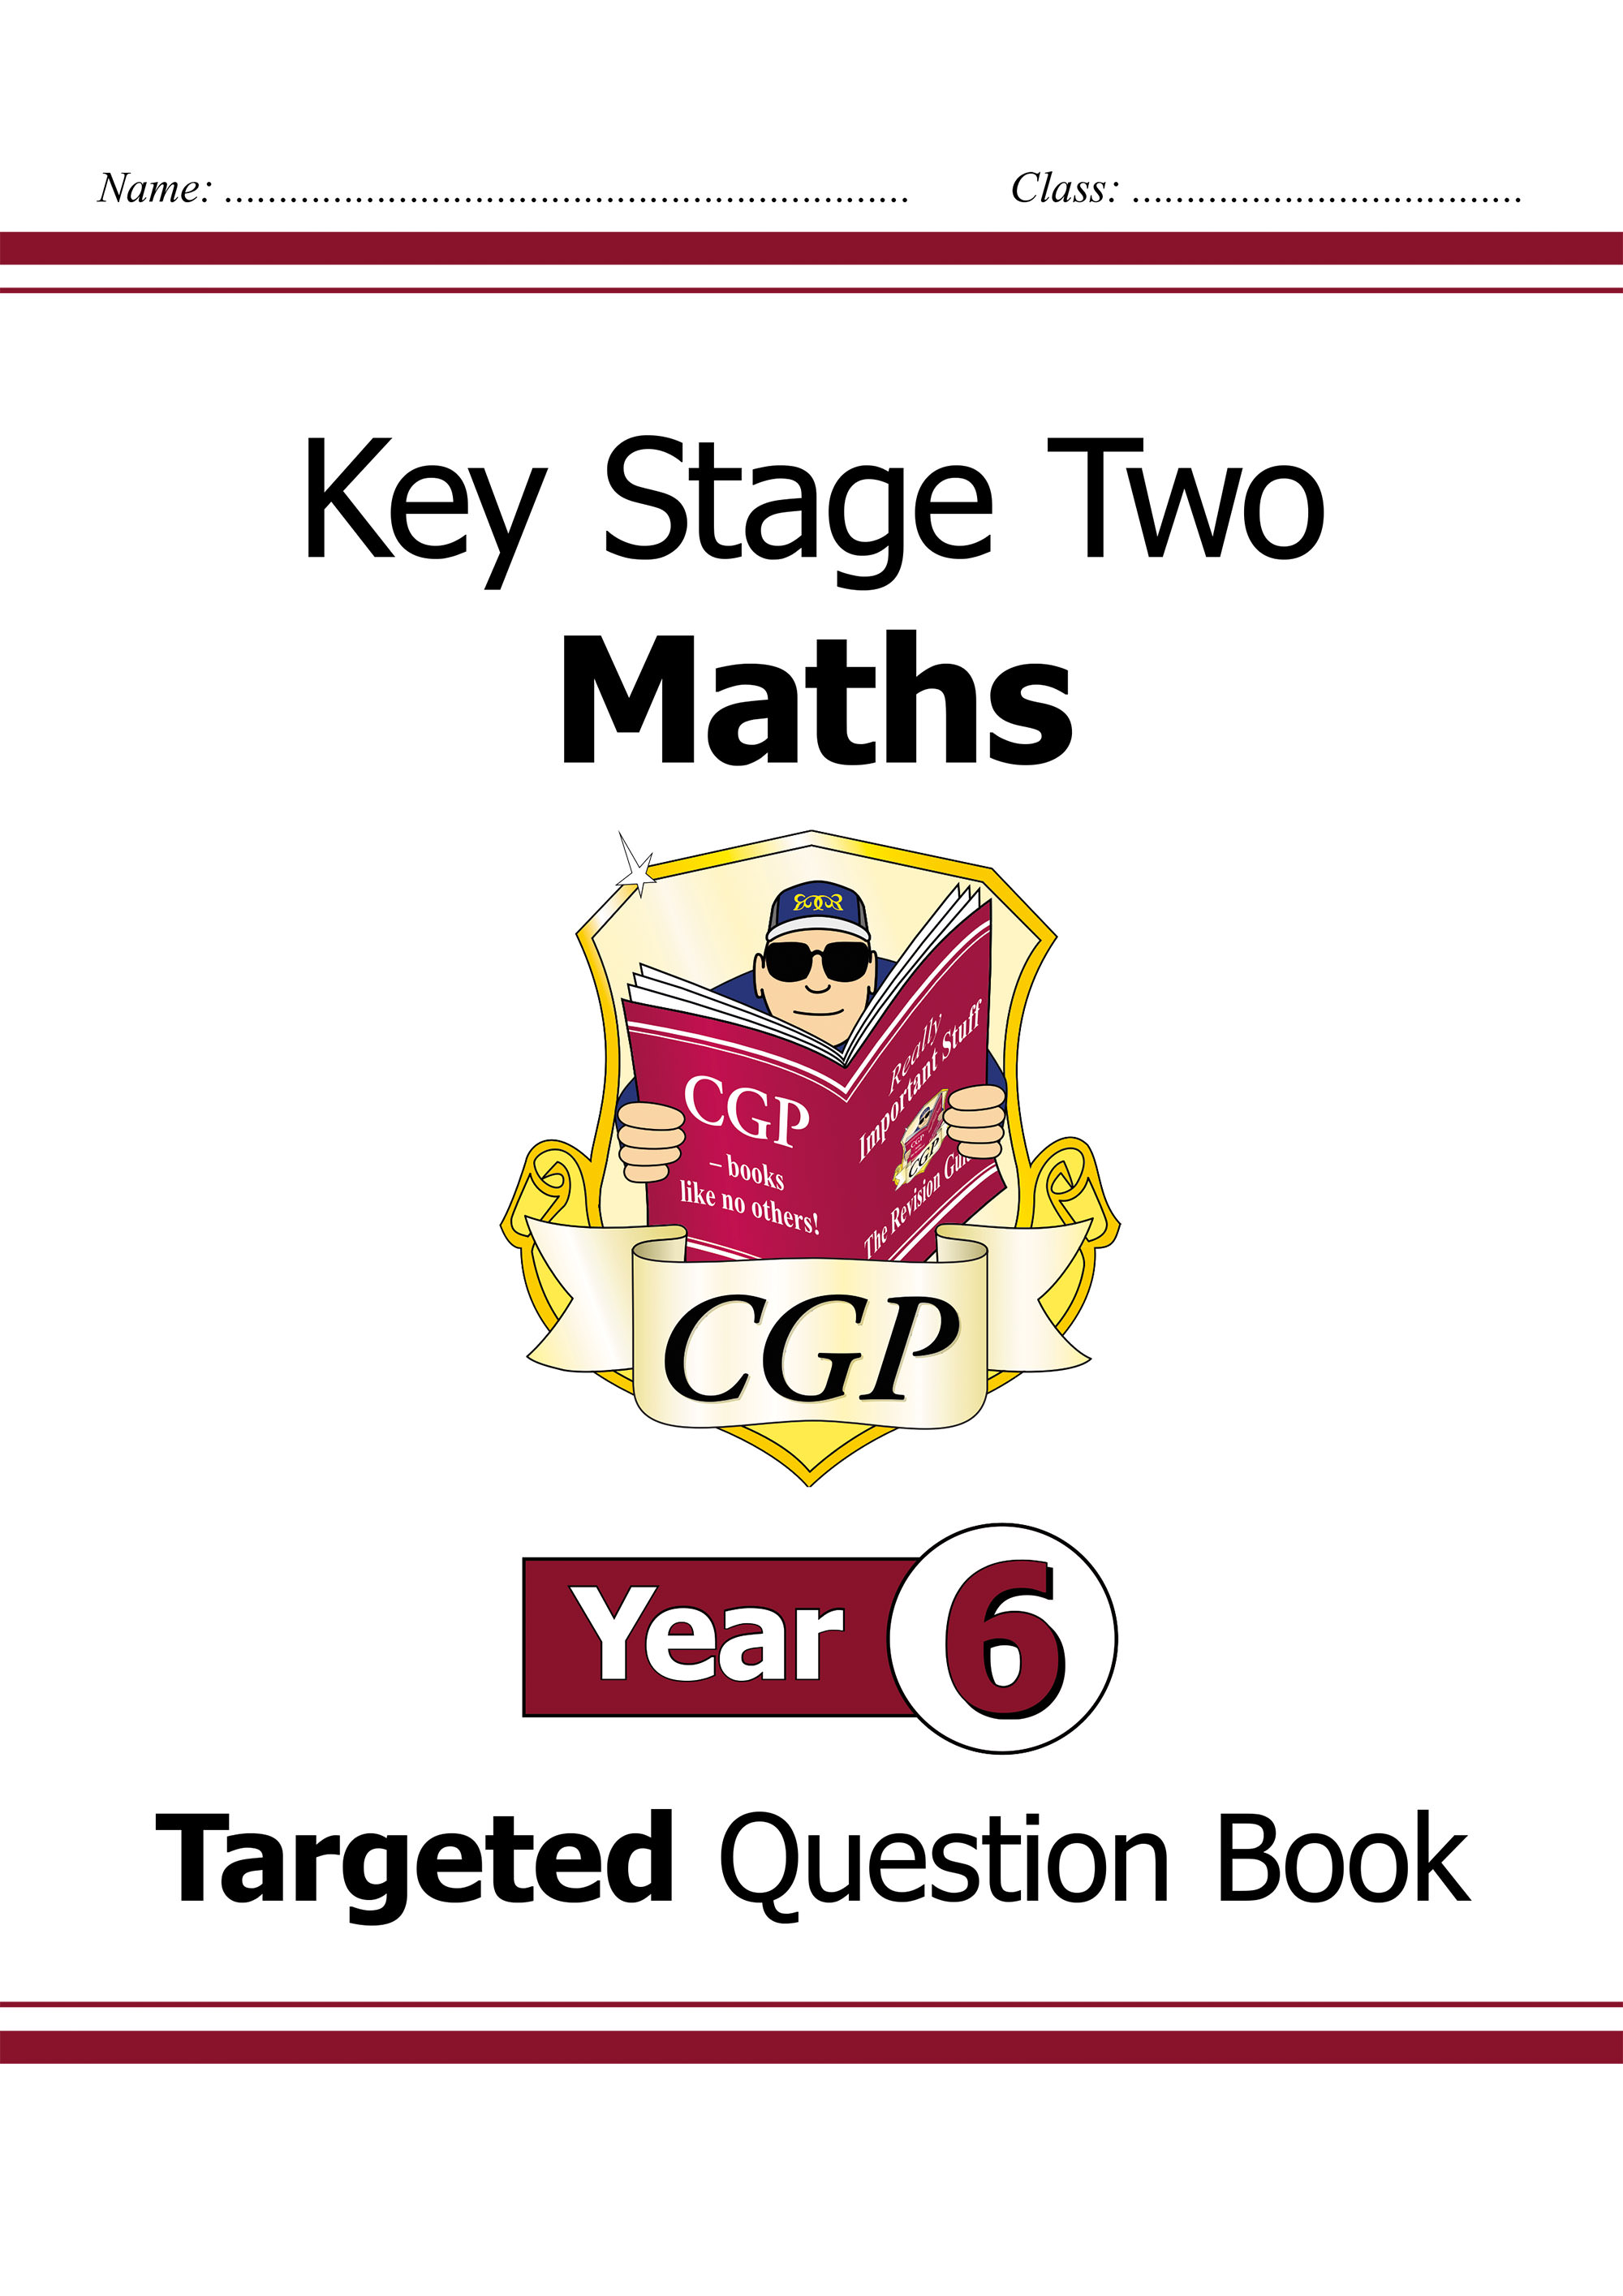 M6Q24D - KS2 Maths Targeted Question Book - Year 6 Online Edition